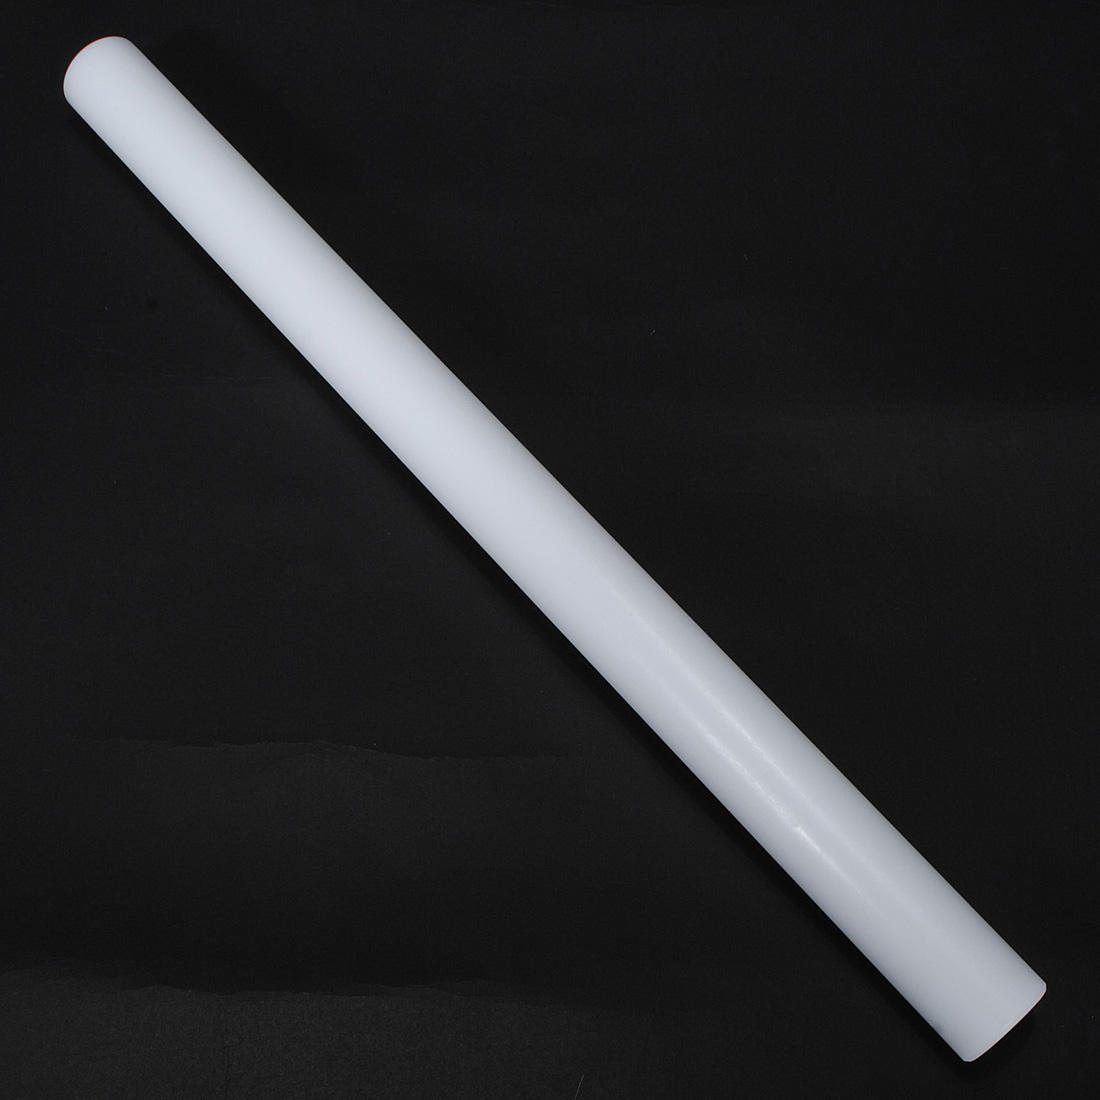 20 Inch Fondant Rolling Pin Cake Dough Decorating Baking Tool